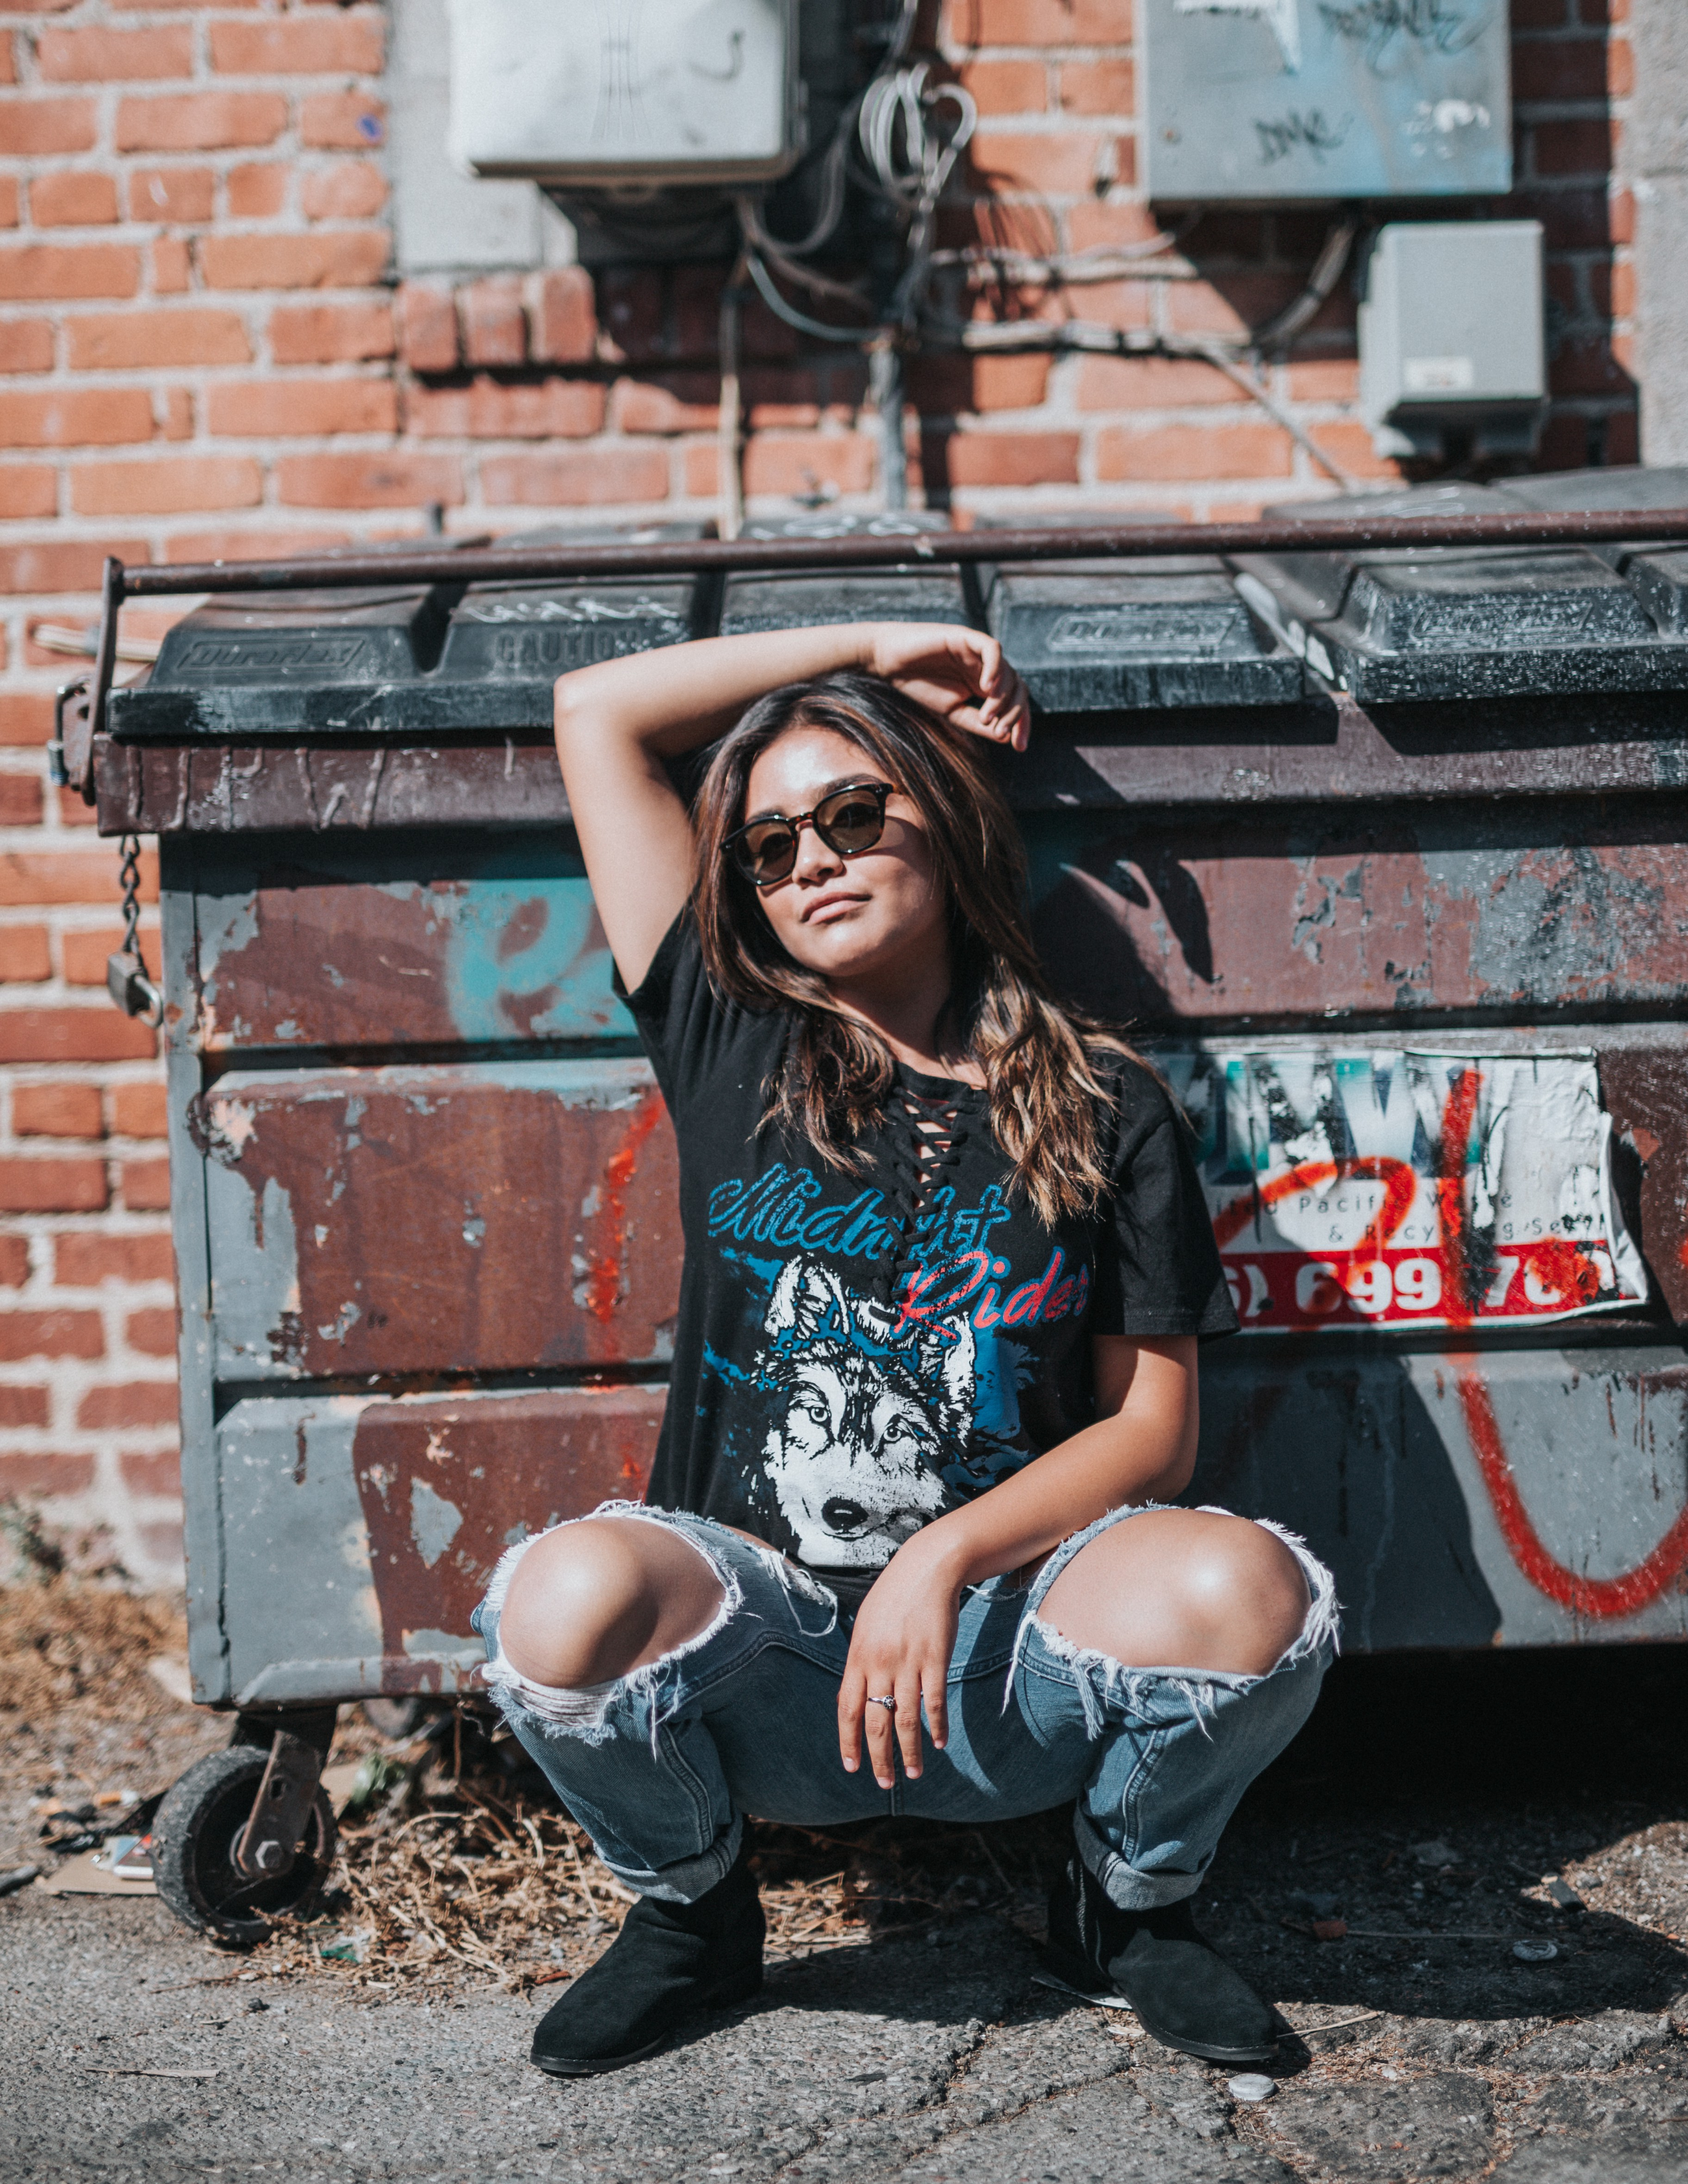 woman posing dramatically in front of a dumpster